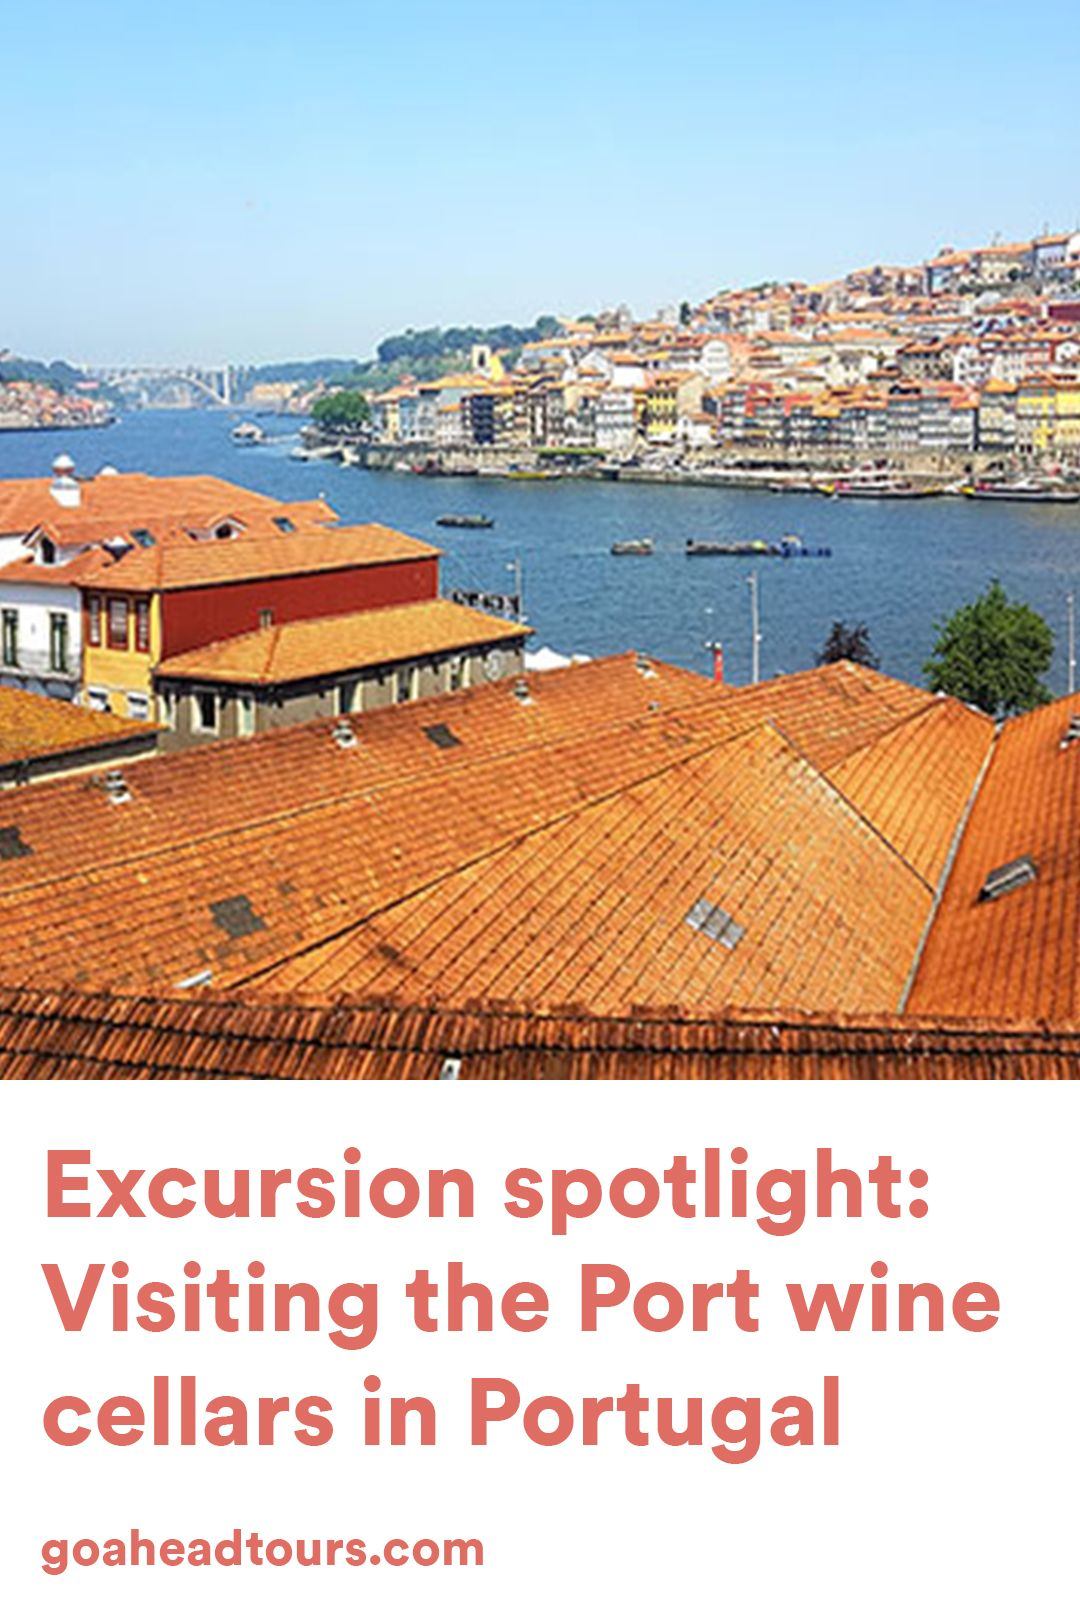 Visiting a port wine cellar in Portugal is a bucket list item to do. Learn about traveler Johan's experience when he visited Ferreira Cellars, one of Portugals famous wine cellars.    #portwine #portwinecellars #portwineportugal #portugalwinecellars